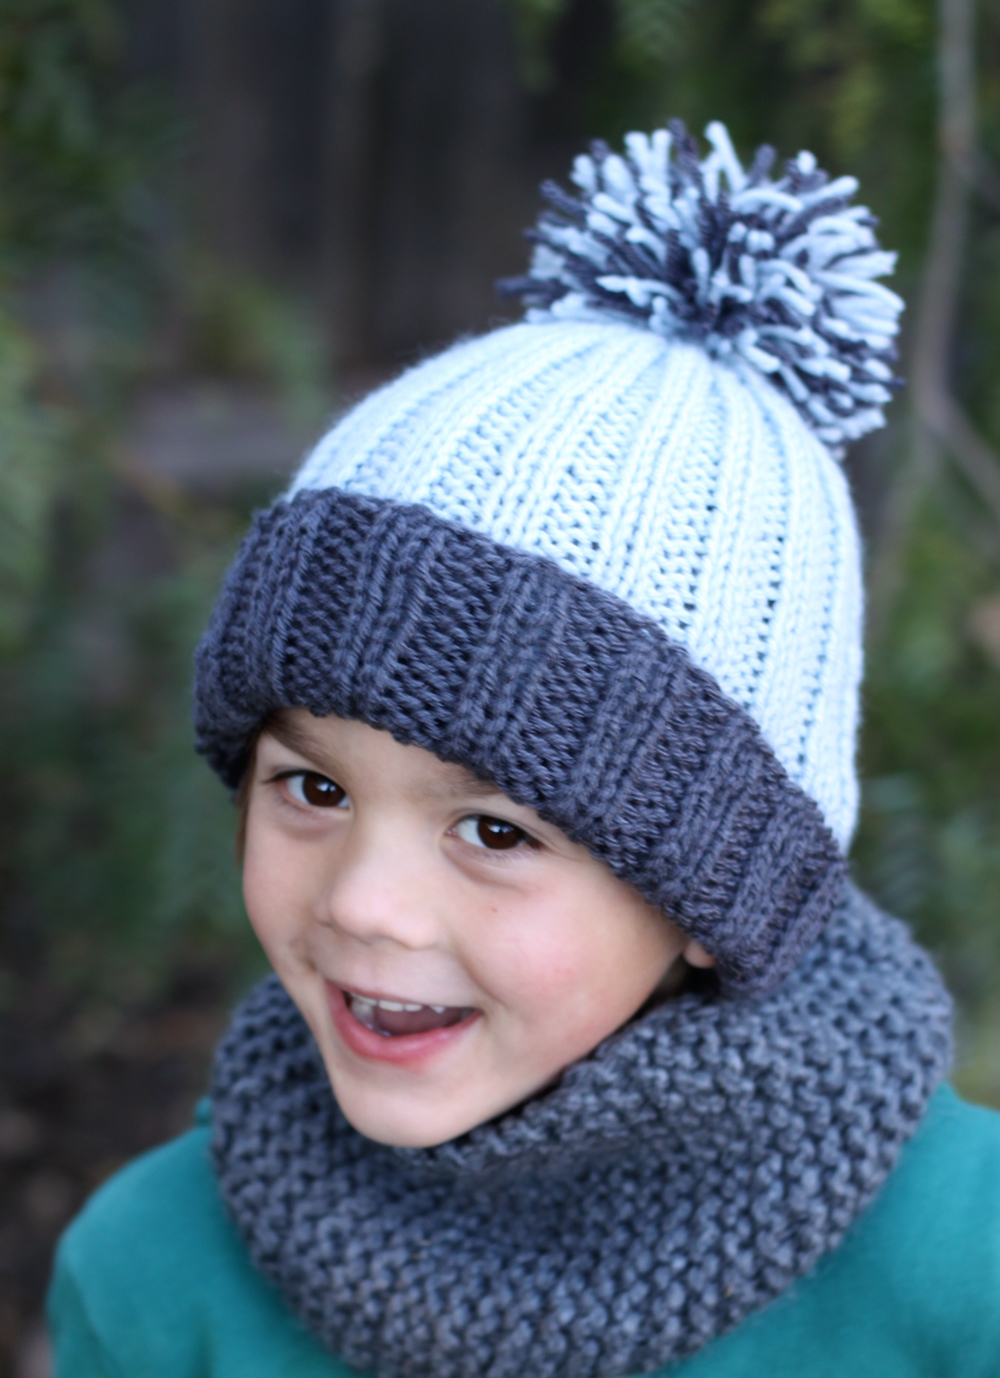 knitted hat patterns free knit hat pattern ABXVPLF